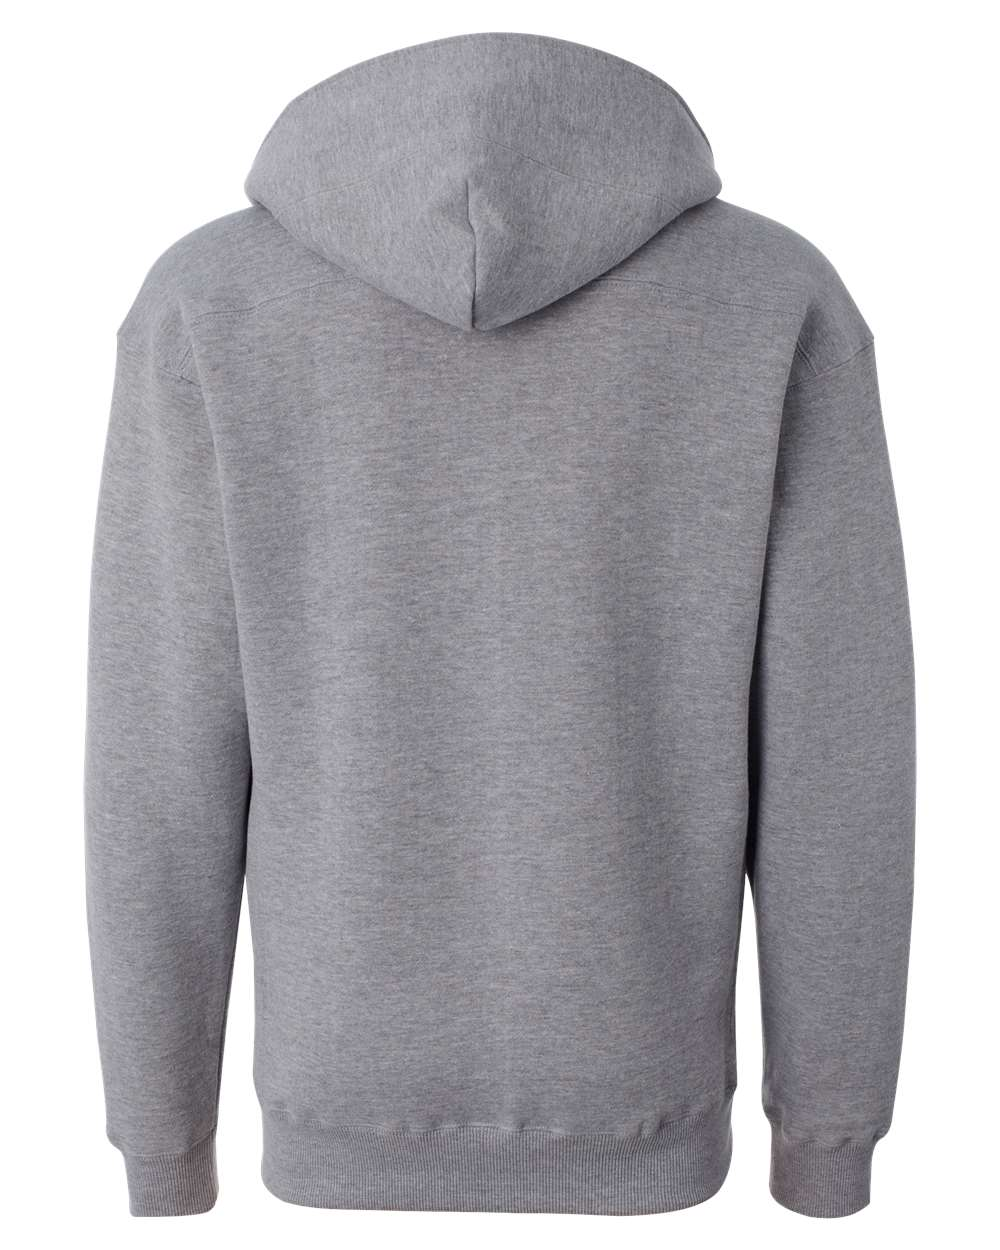 J-America-Mens-Blank-Sport-Lace-Hooded-Sweatshirt-8830-up-to-3XL thumbnail 22